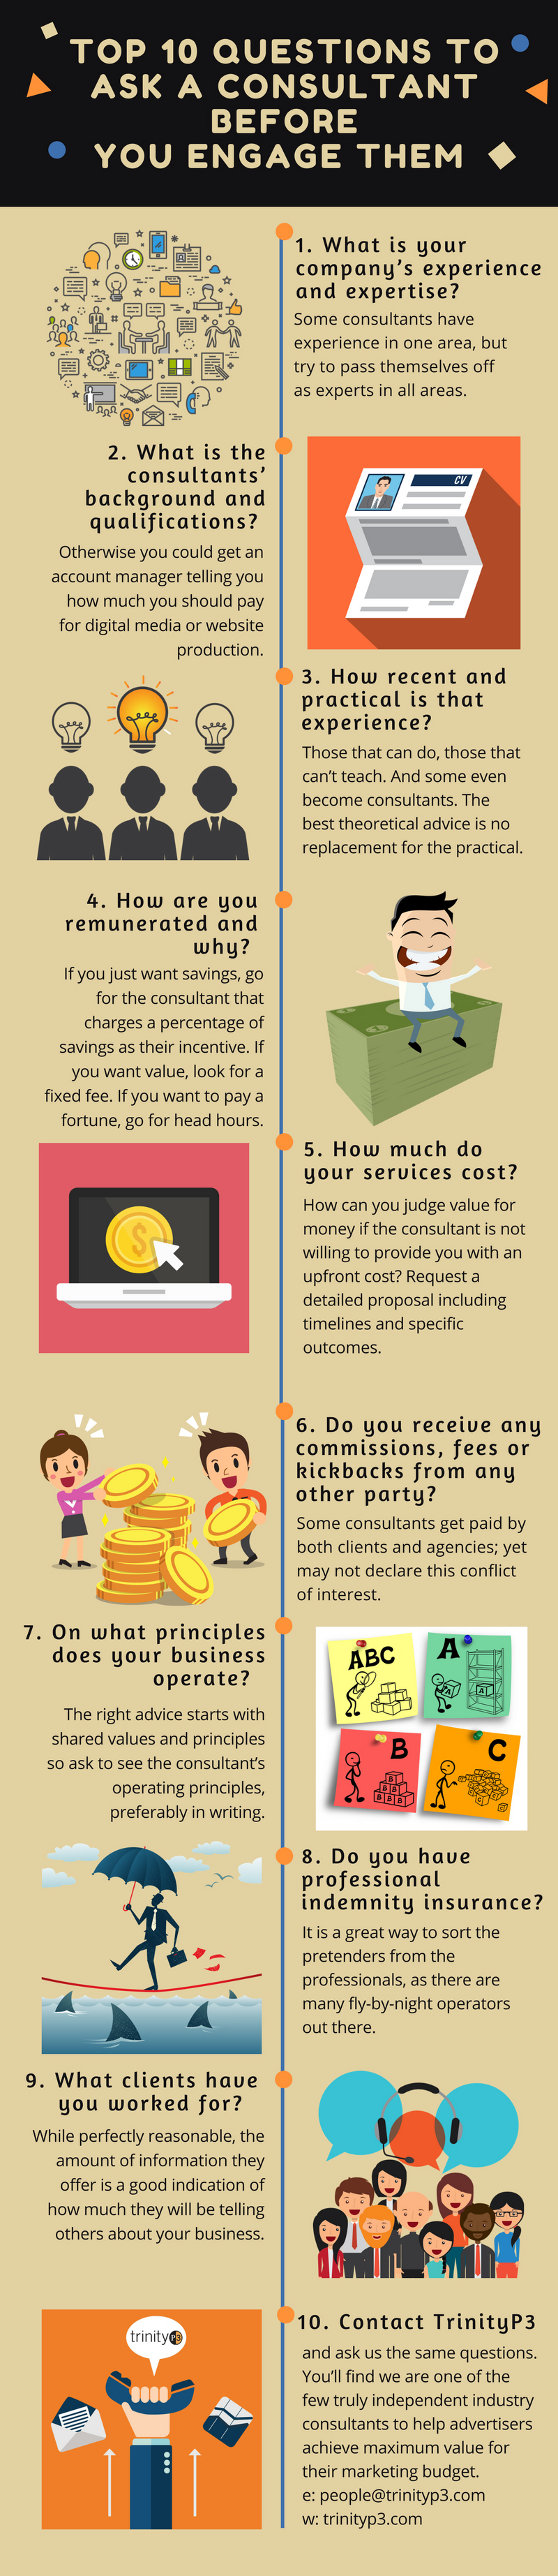 Infographic questions